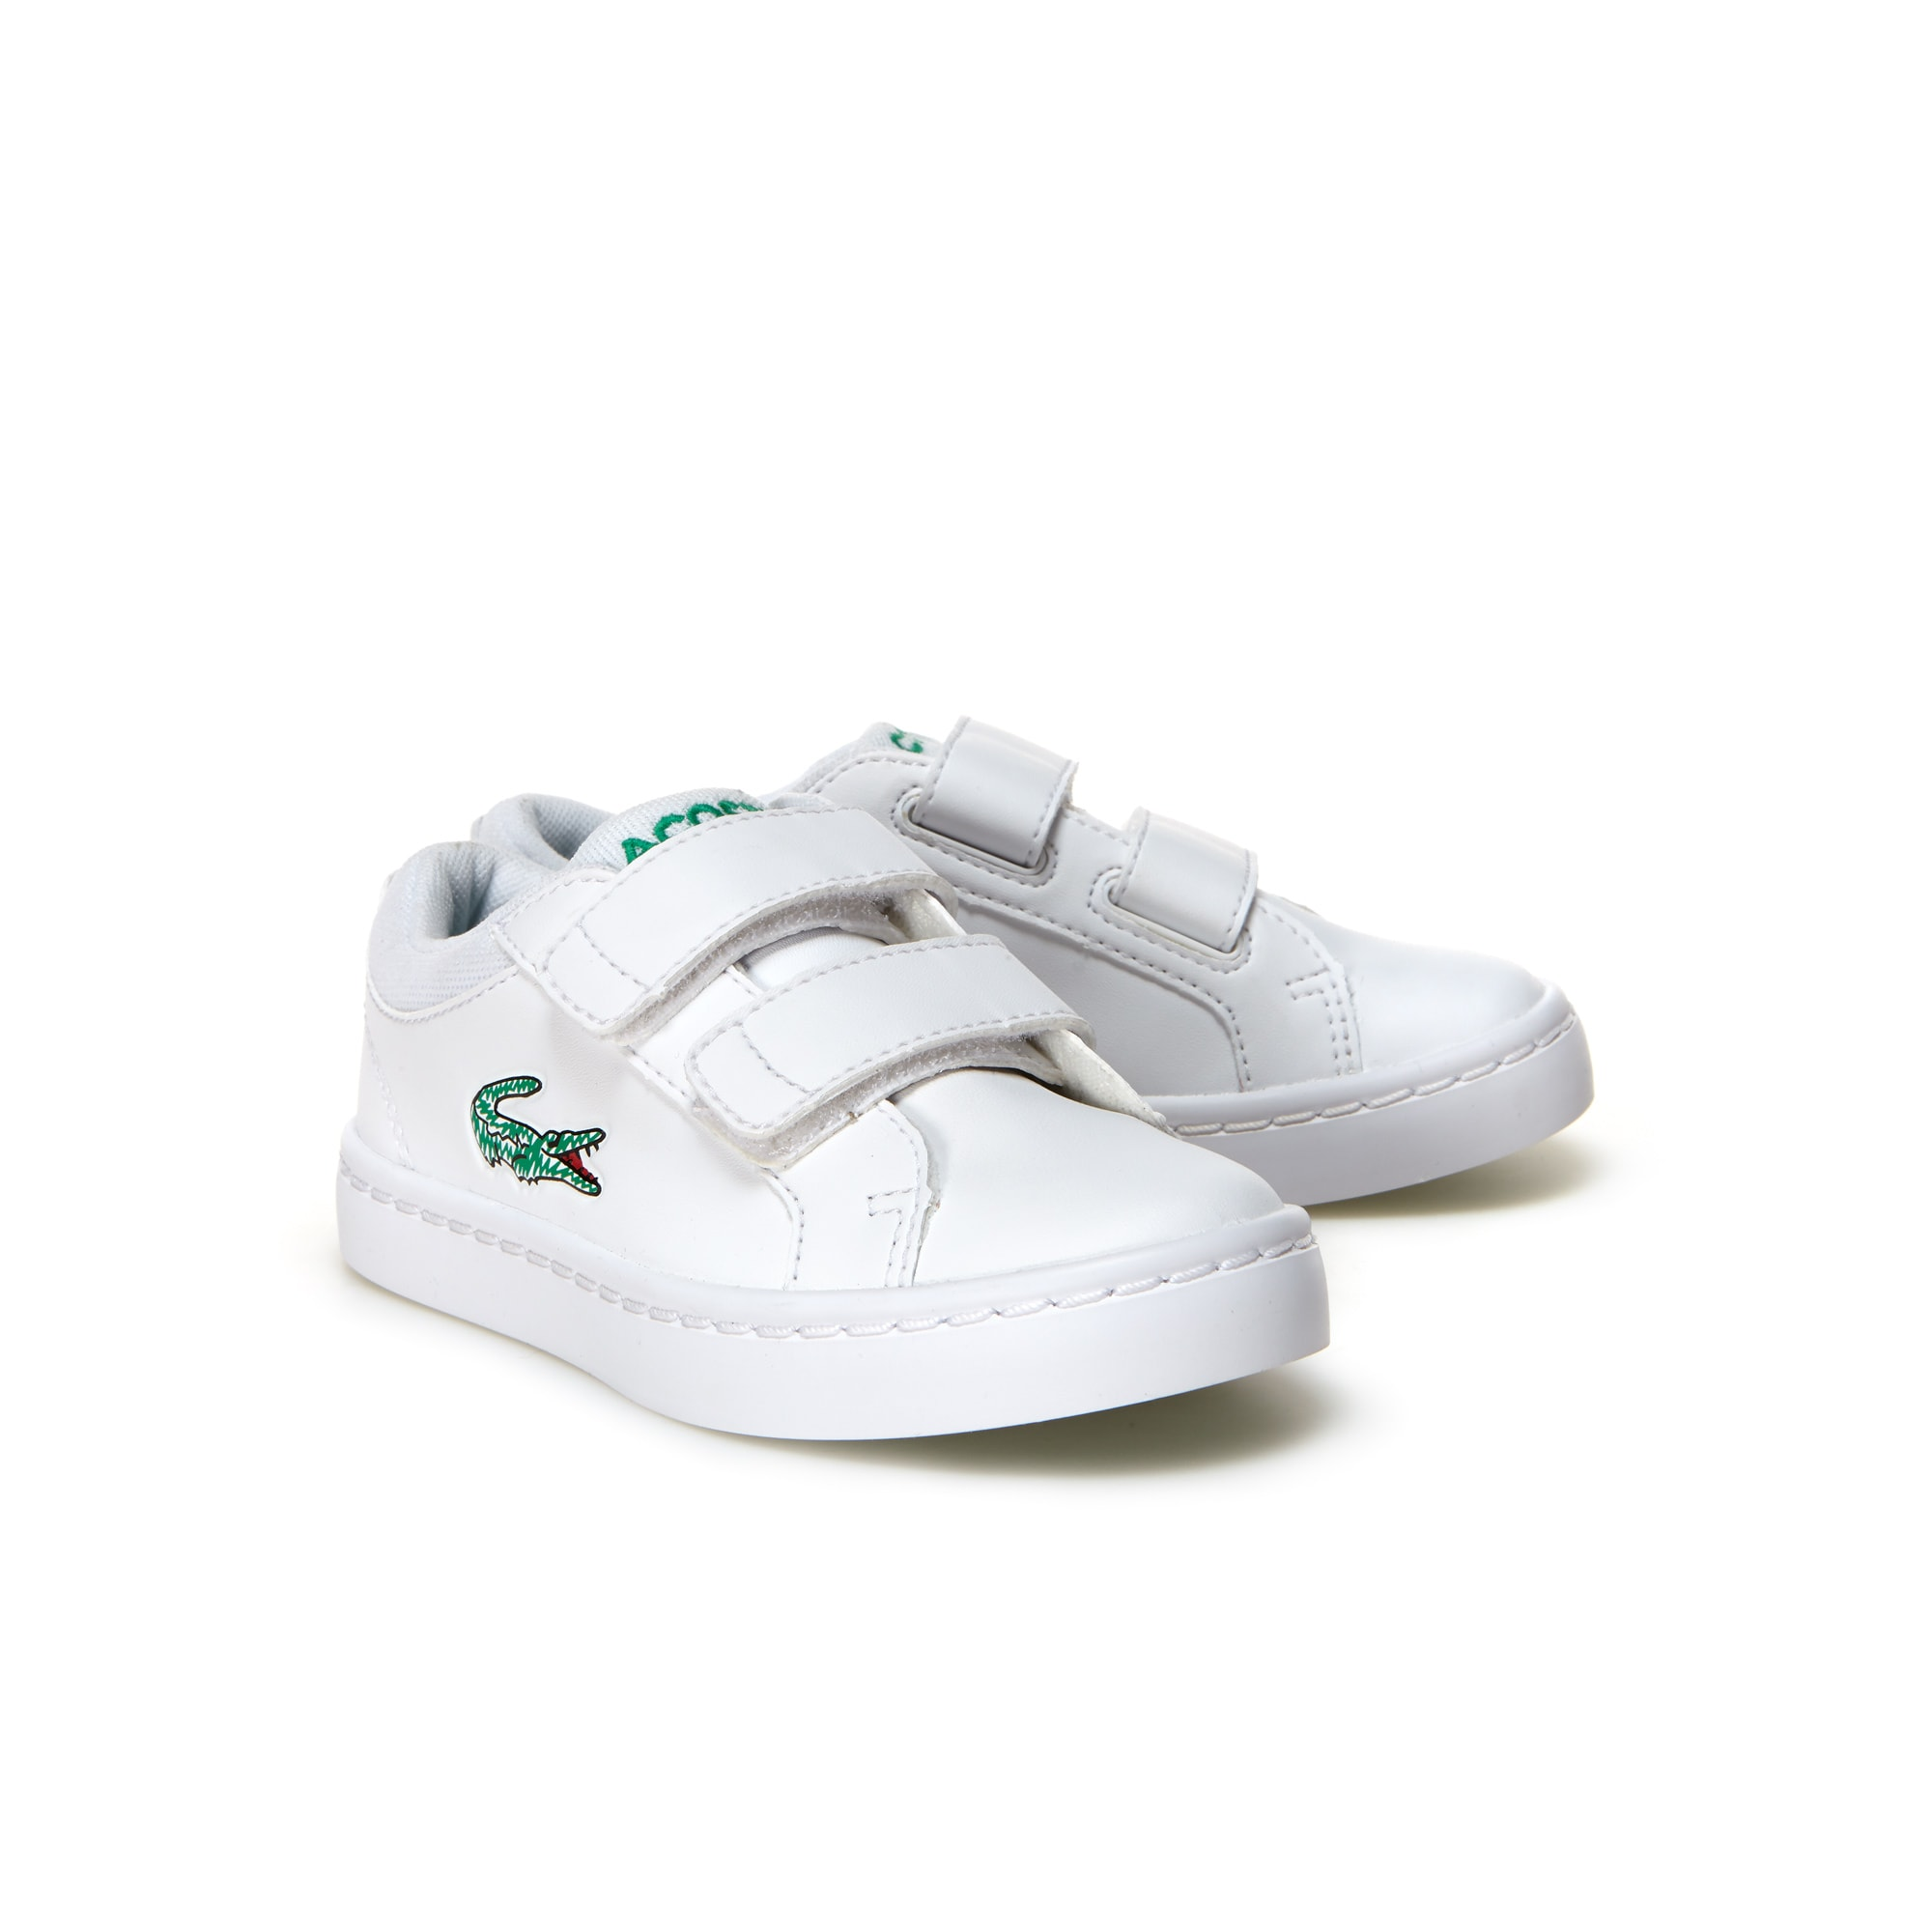 38c9c01392f228 ... Infant Straightset Lace Leather-look Trainers LACOSTE super cheap 58f2c  4932e  Kids Shoes Boys ...